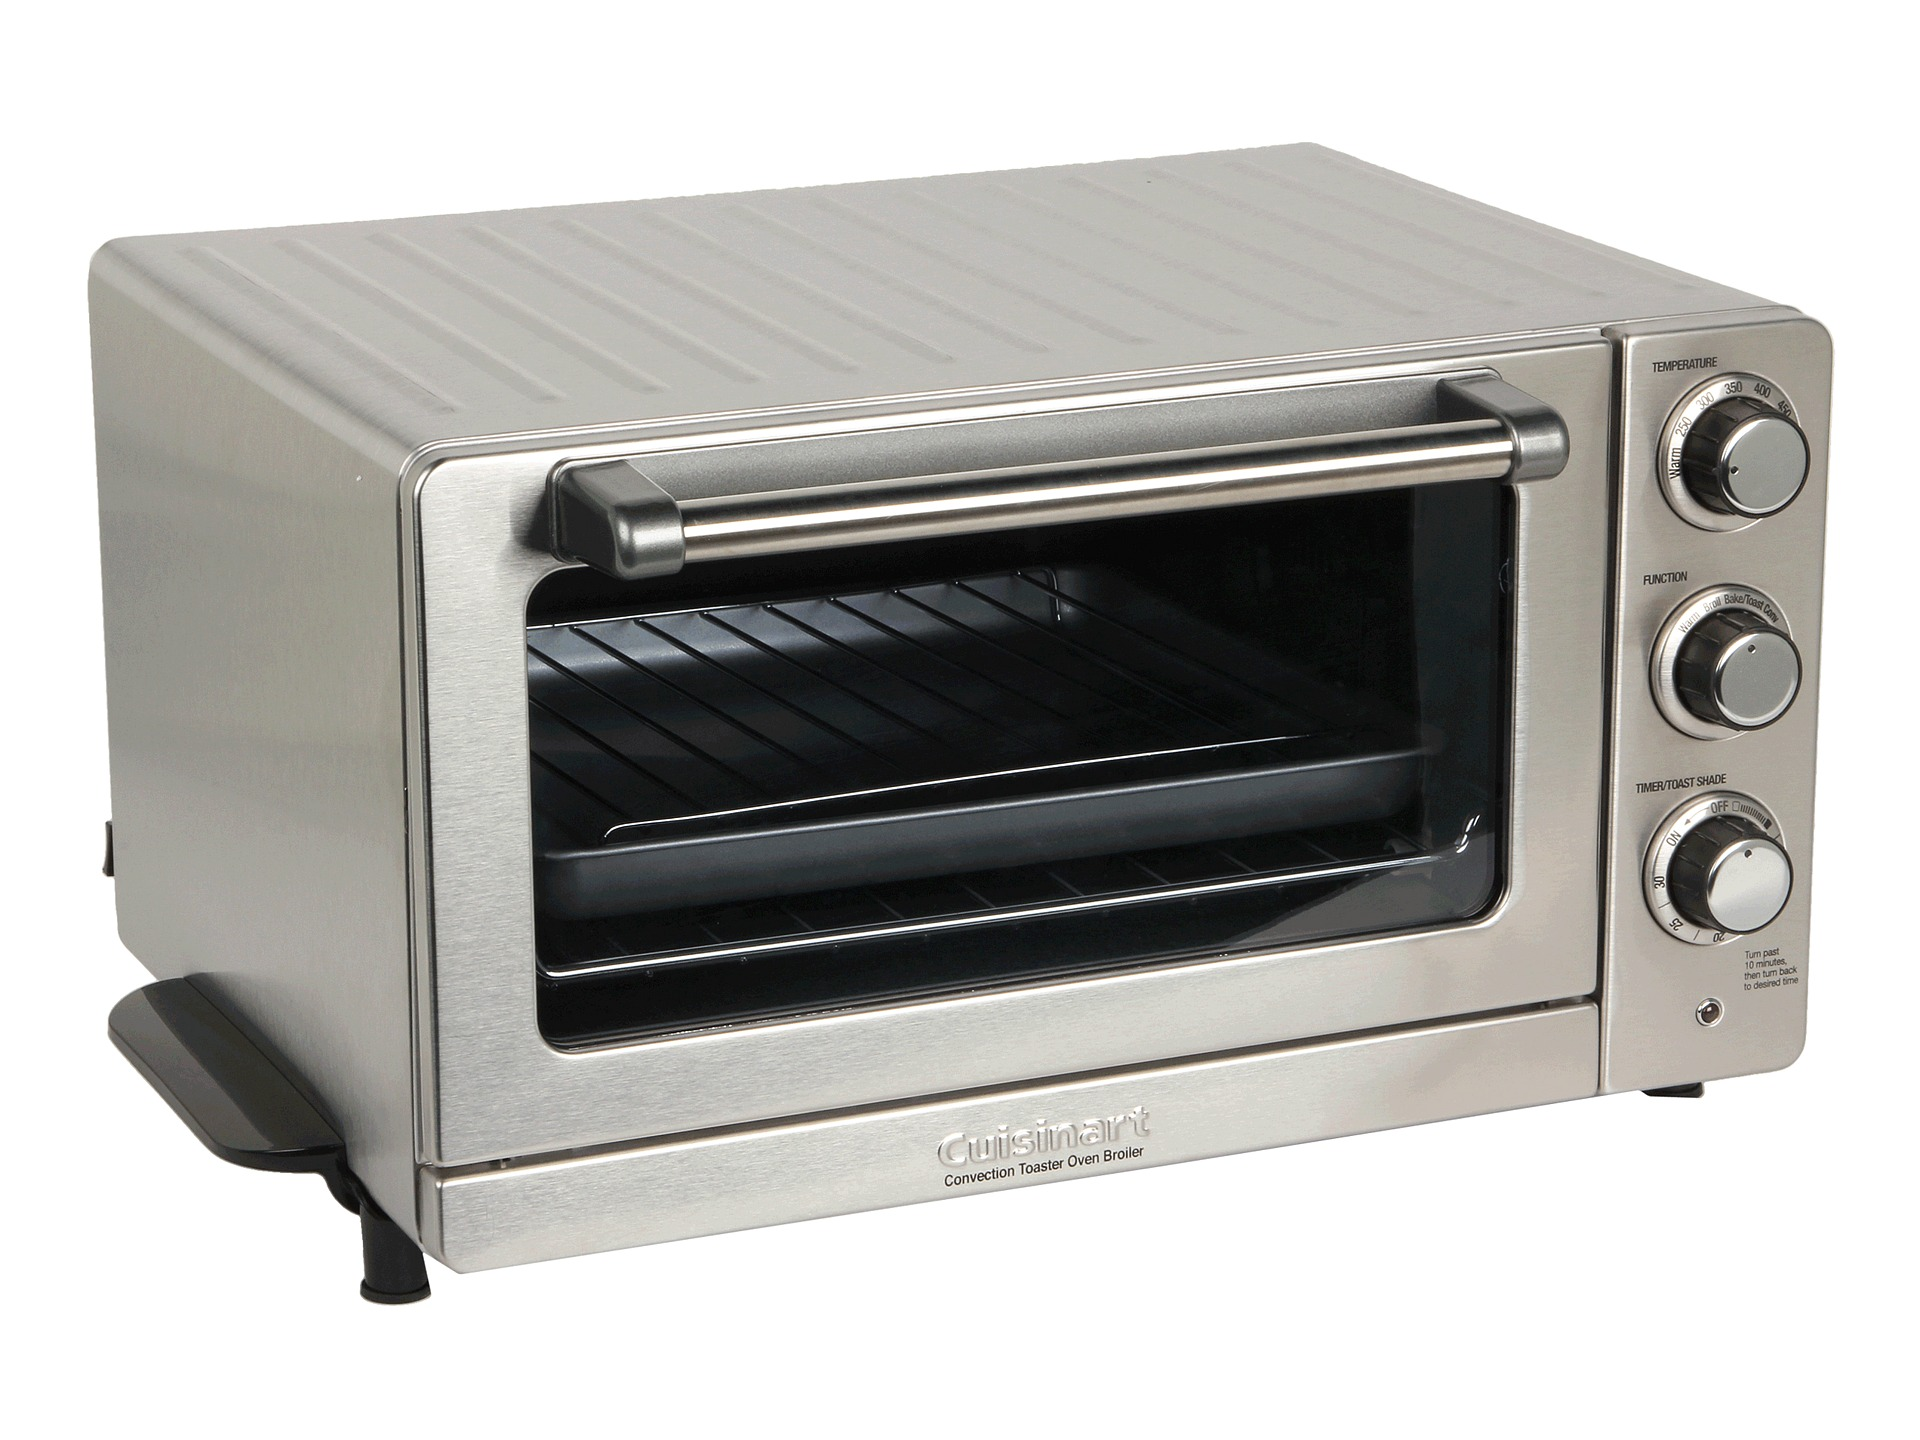 Countertop Convection Oven Cuisinart Toaster Oven : No results for cuisinart tob 60n convection toaster oven - Search ...